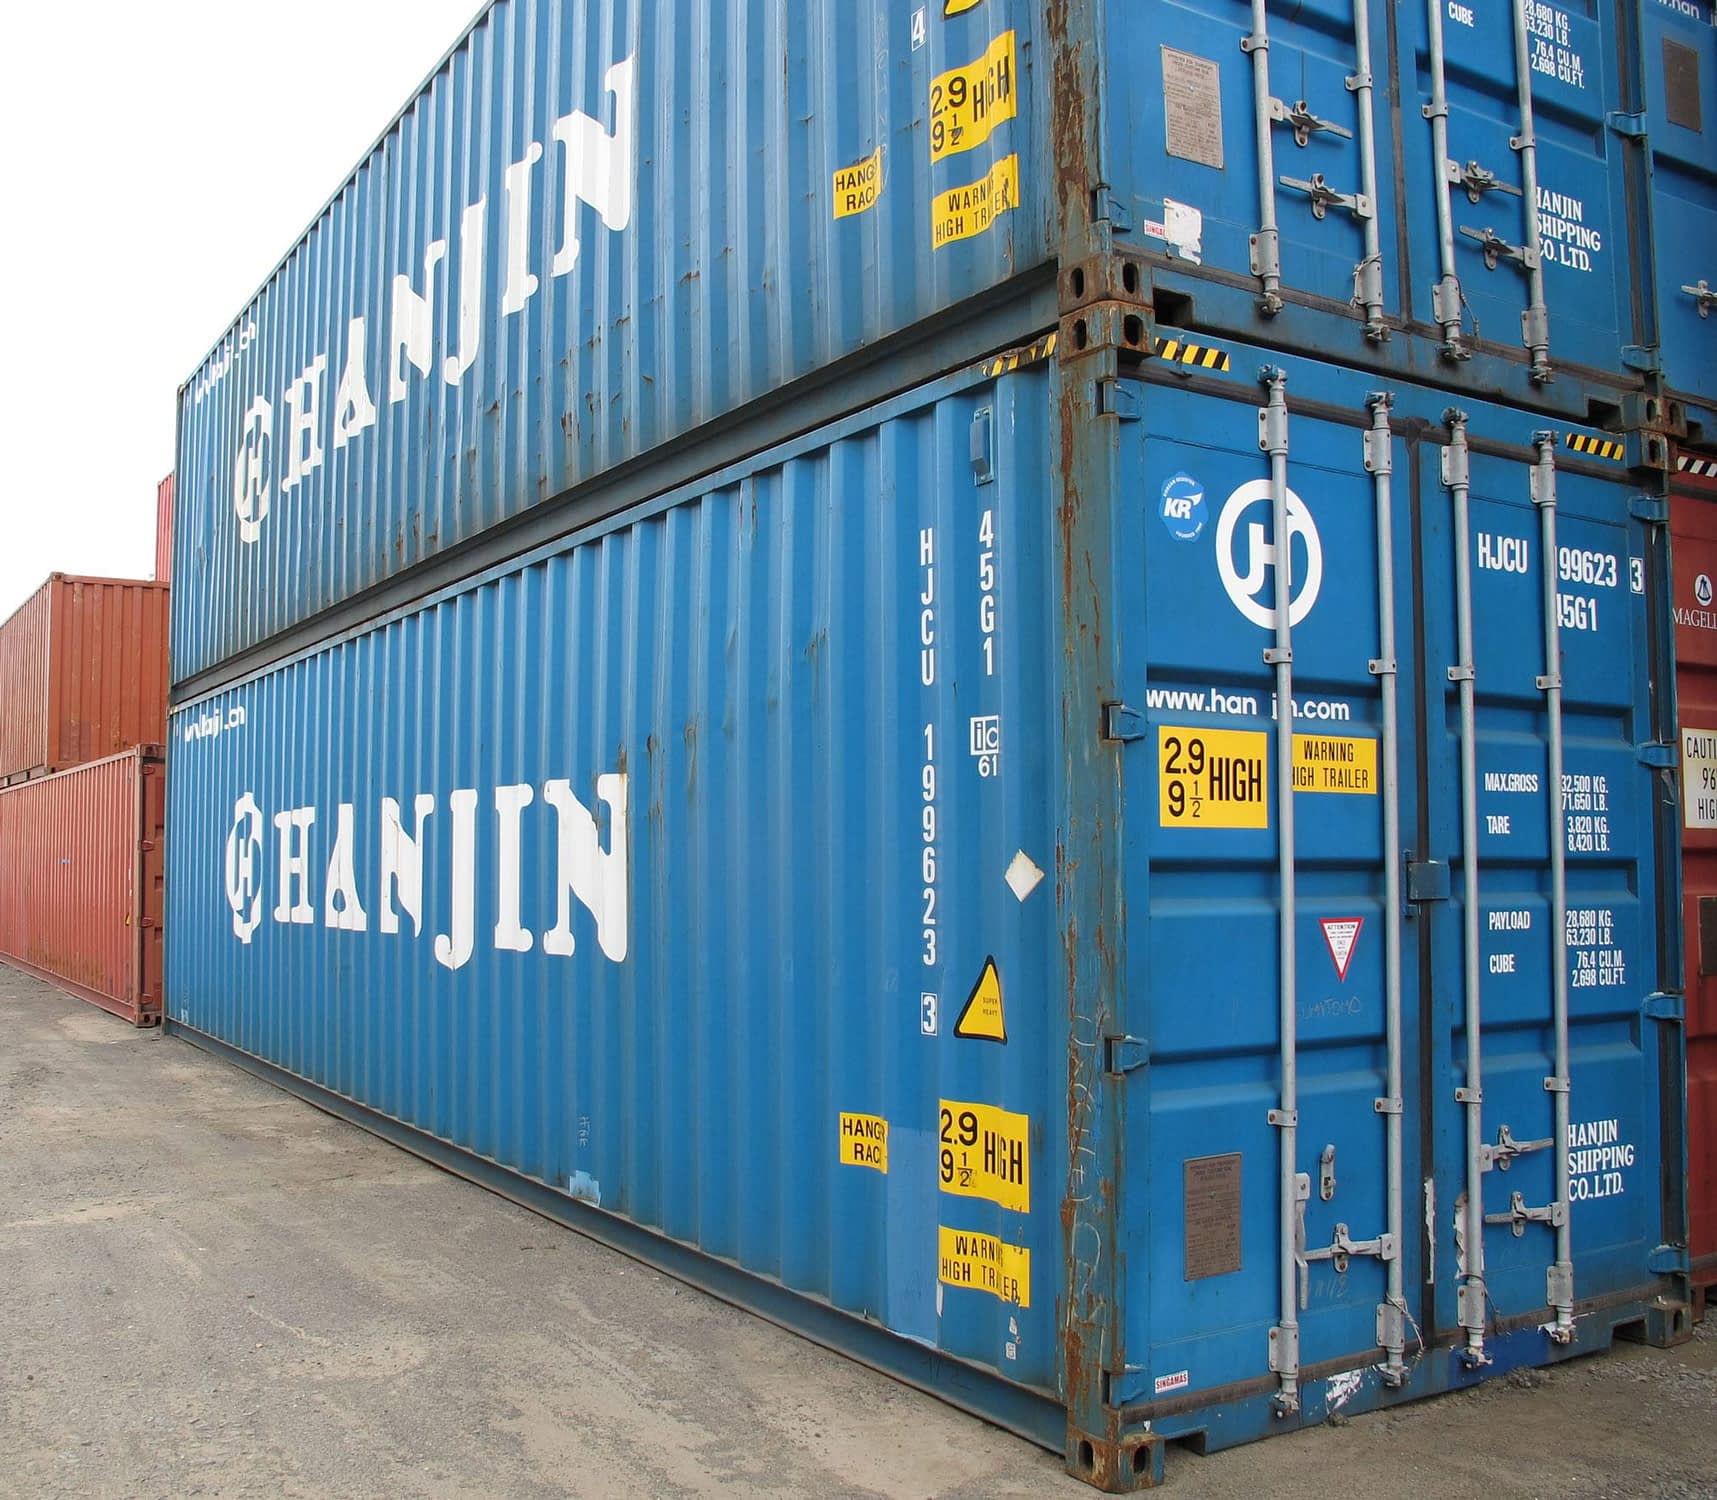 TRS stocks new and used 40ft long highcube shipping storage containers